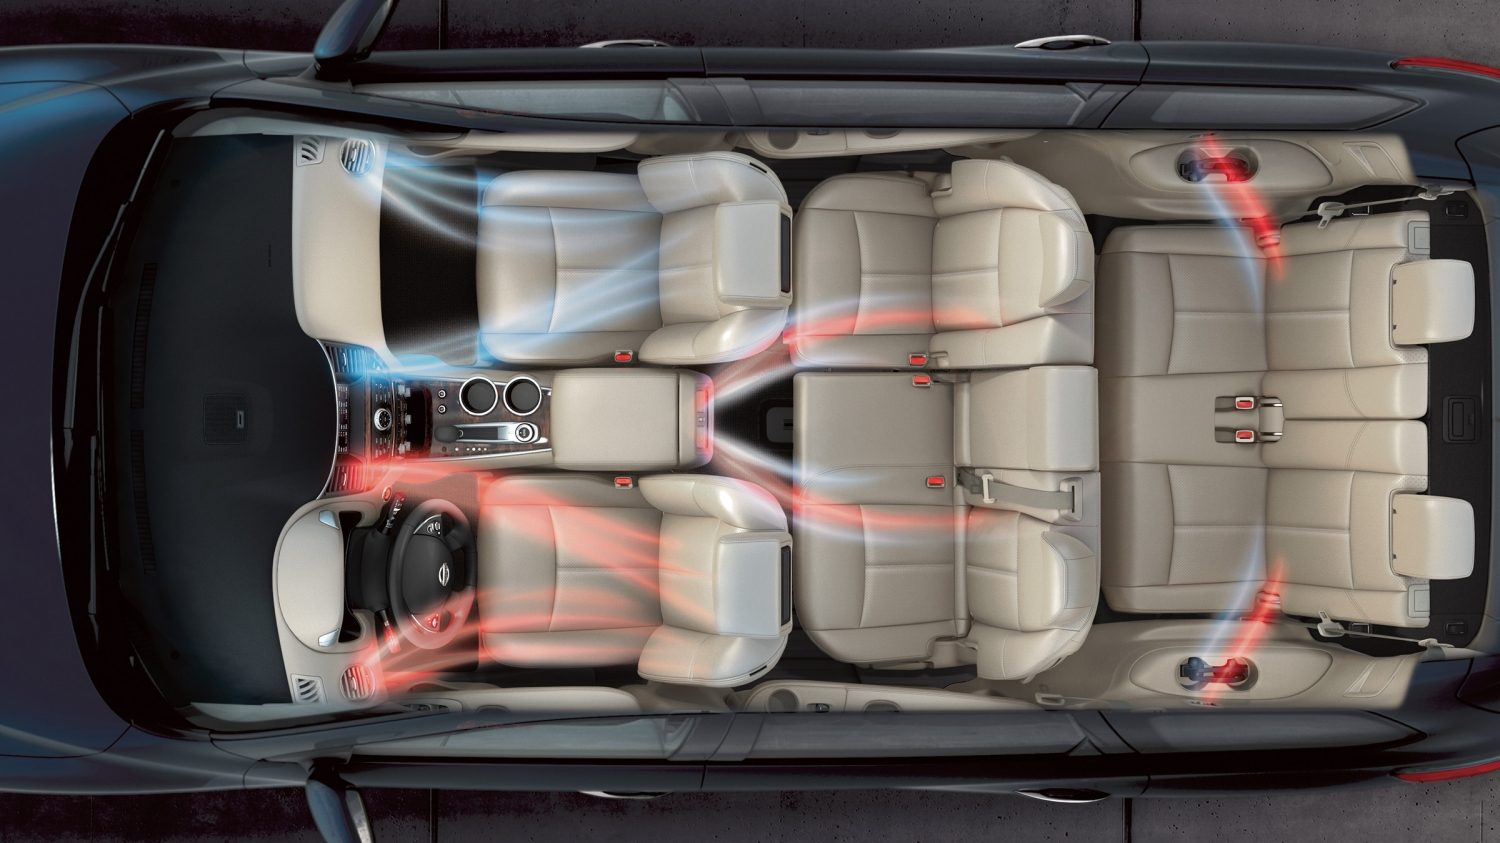 Nissan Pathfinder interior showing heat and air circulation